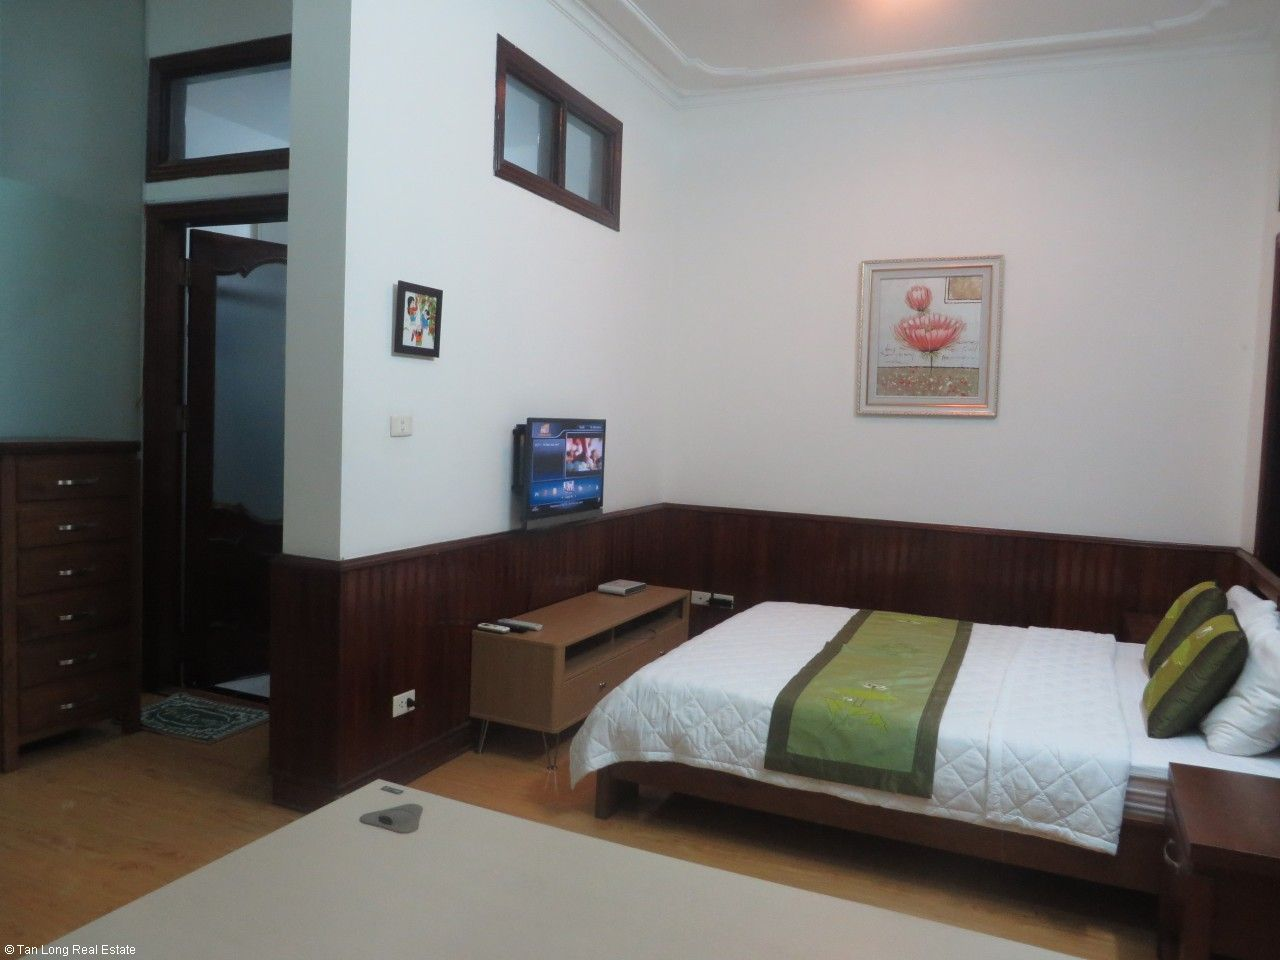 Cheap and nice apartment for rent in Ta Quang Buu Street ...